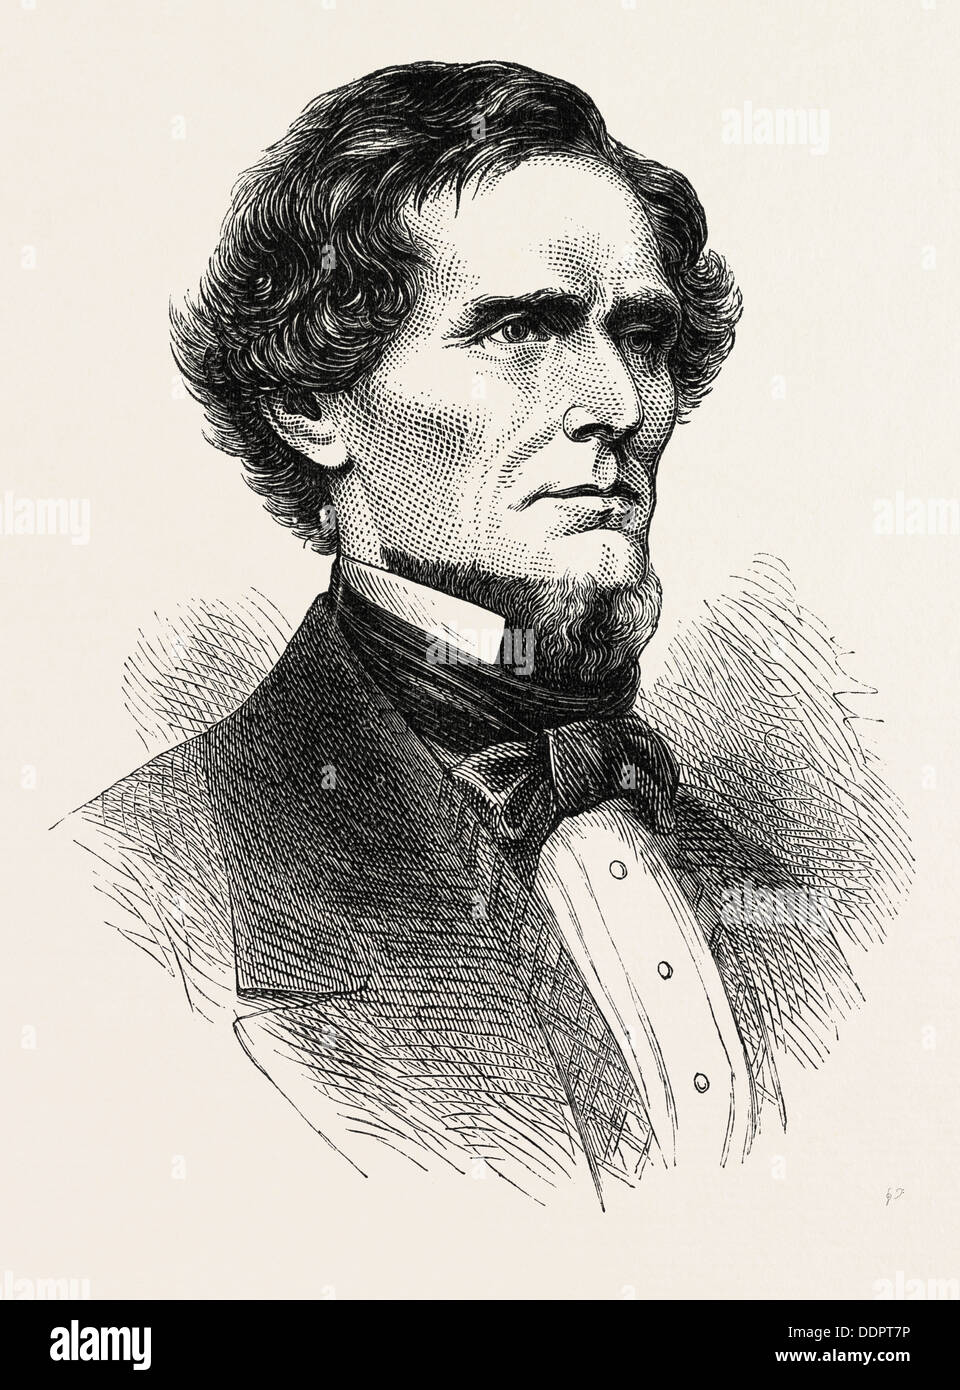 JEFFERSON DAVIS, He was an American statesman and leader of the Confederacy during the American Civil War - Stock Image